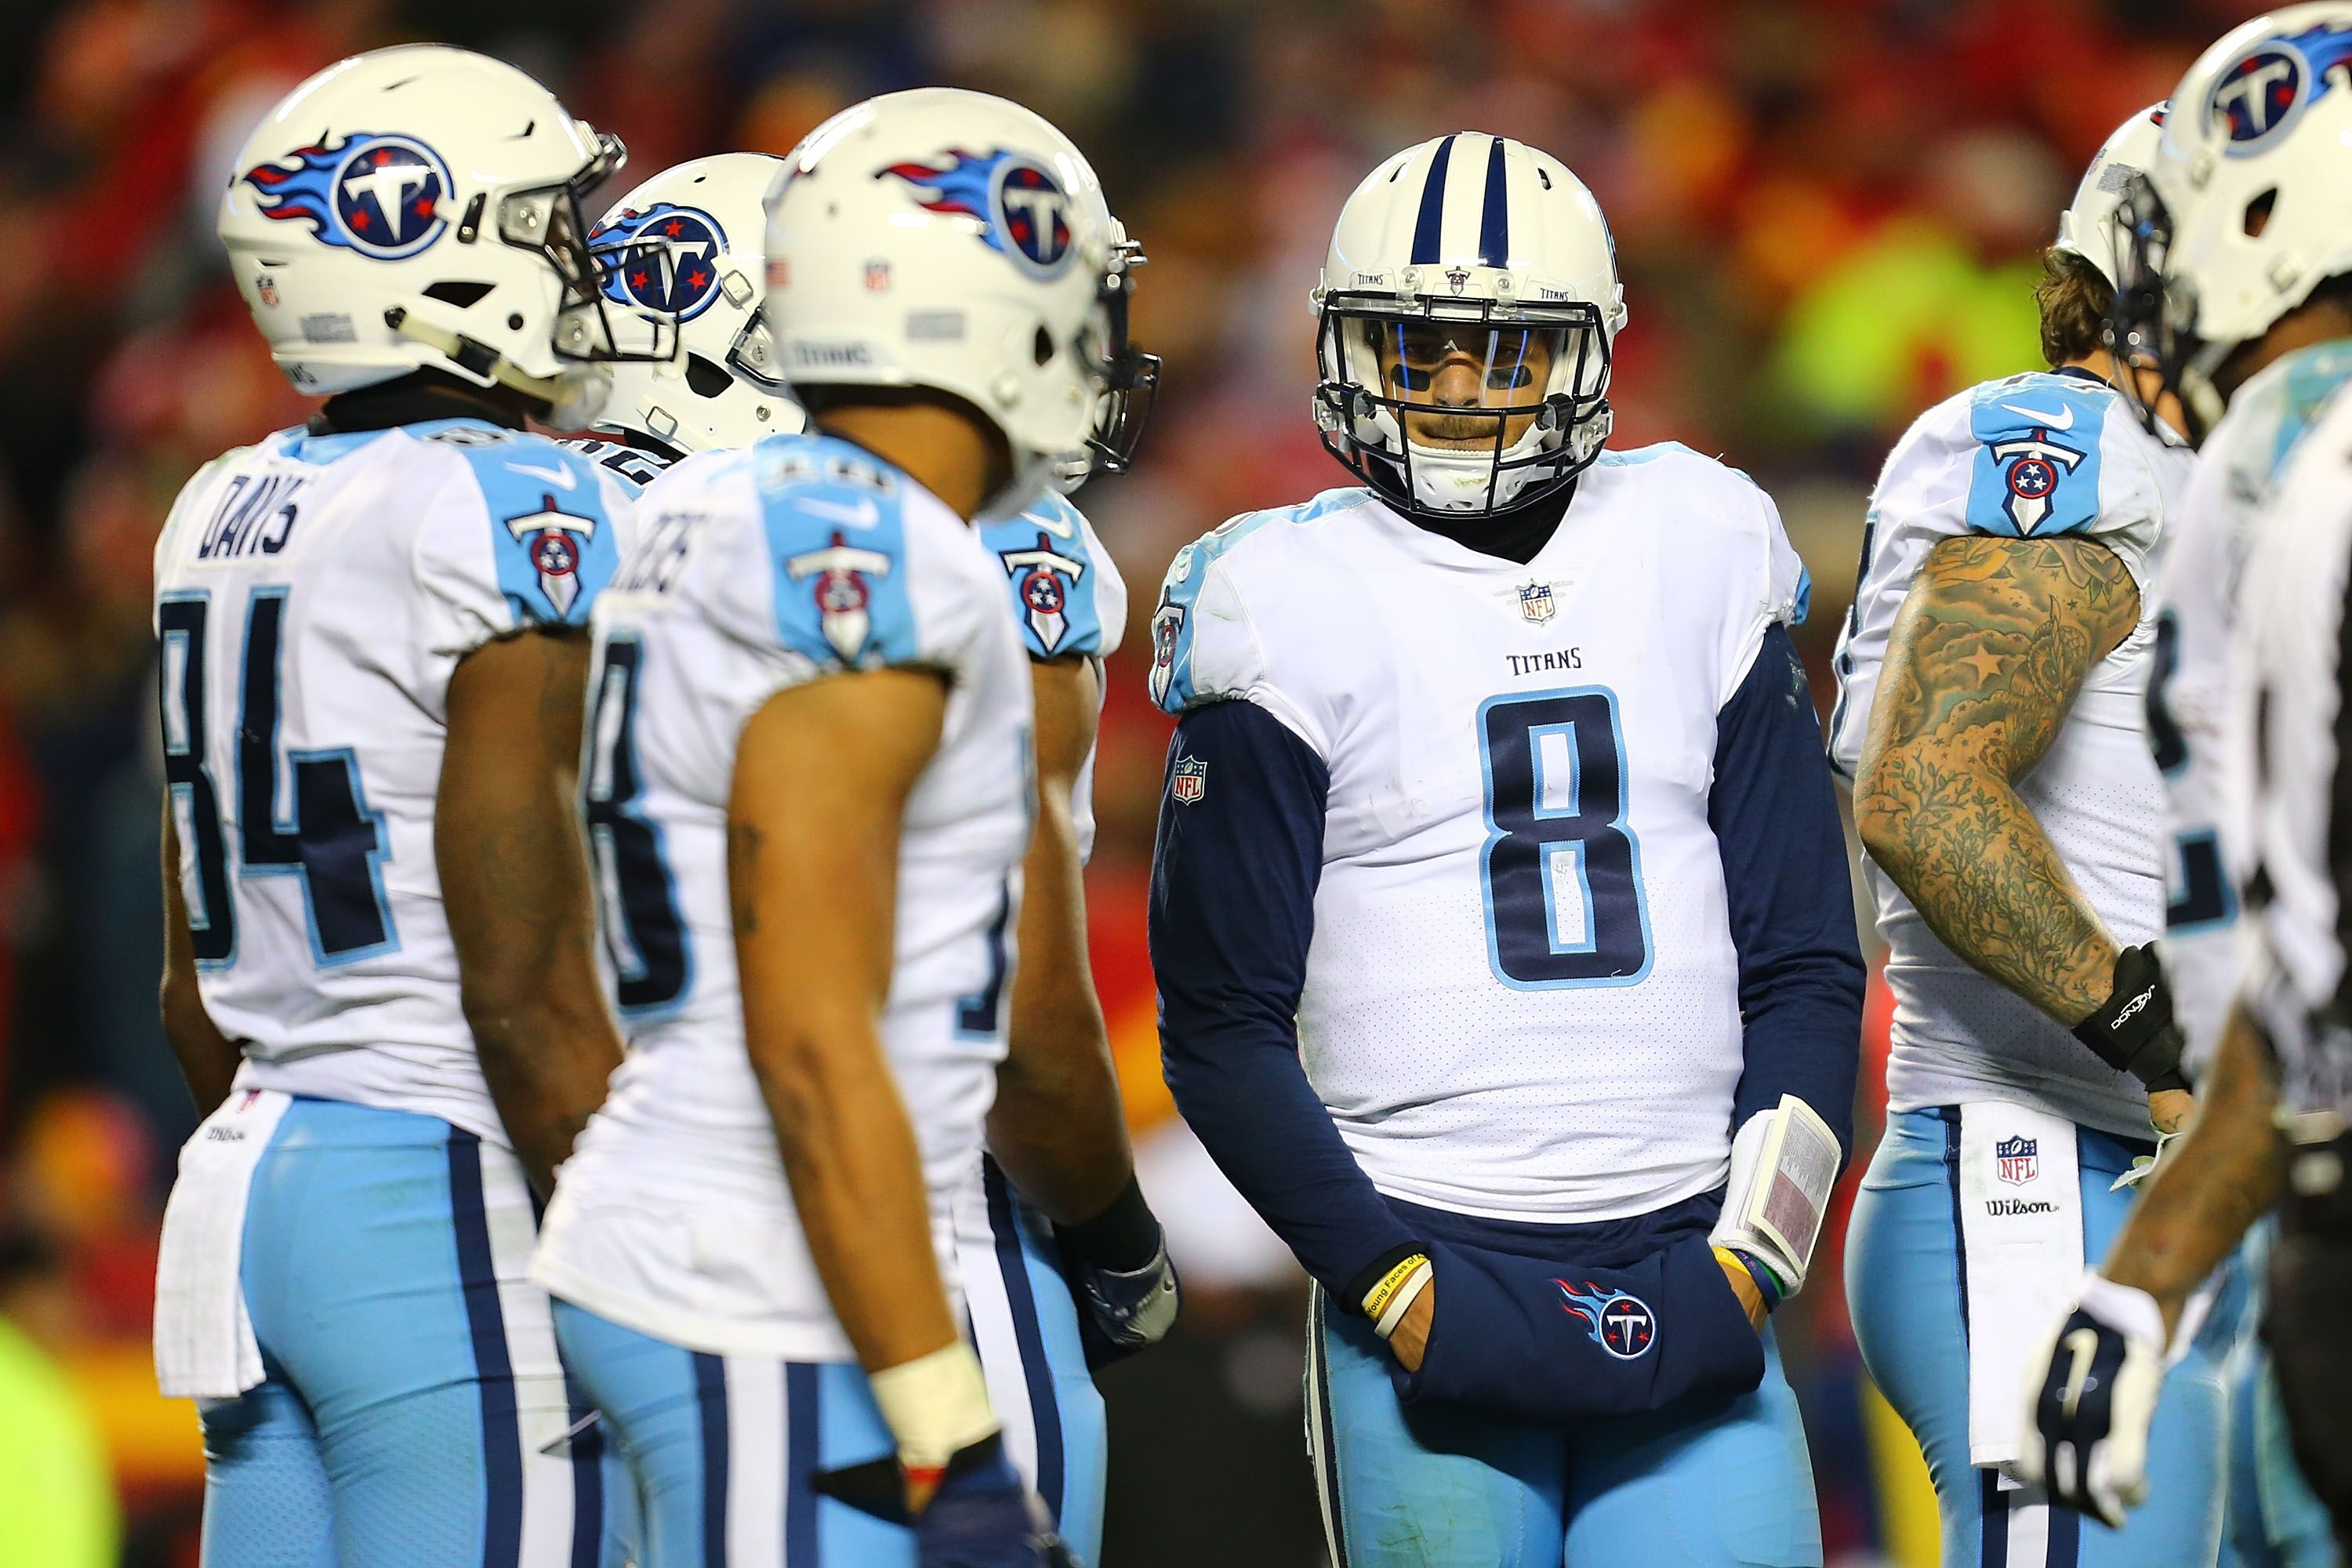 902067664-wild-card-round-tennessee-titans-v-kansas-city-chiefs.jpg